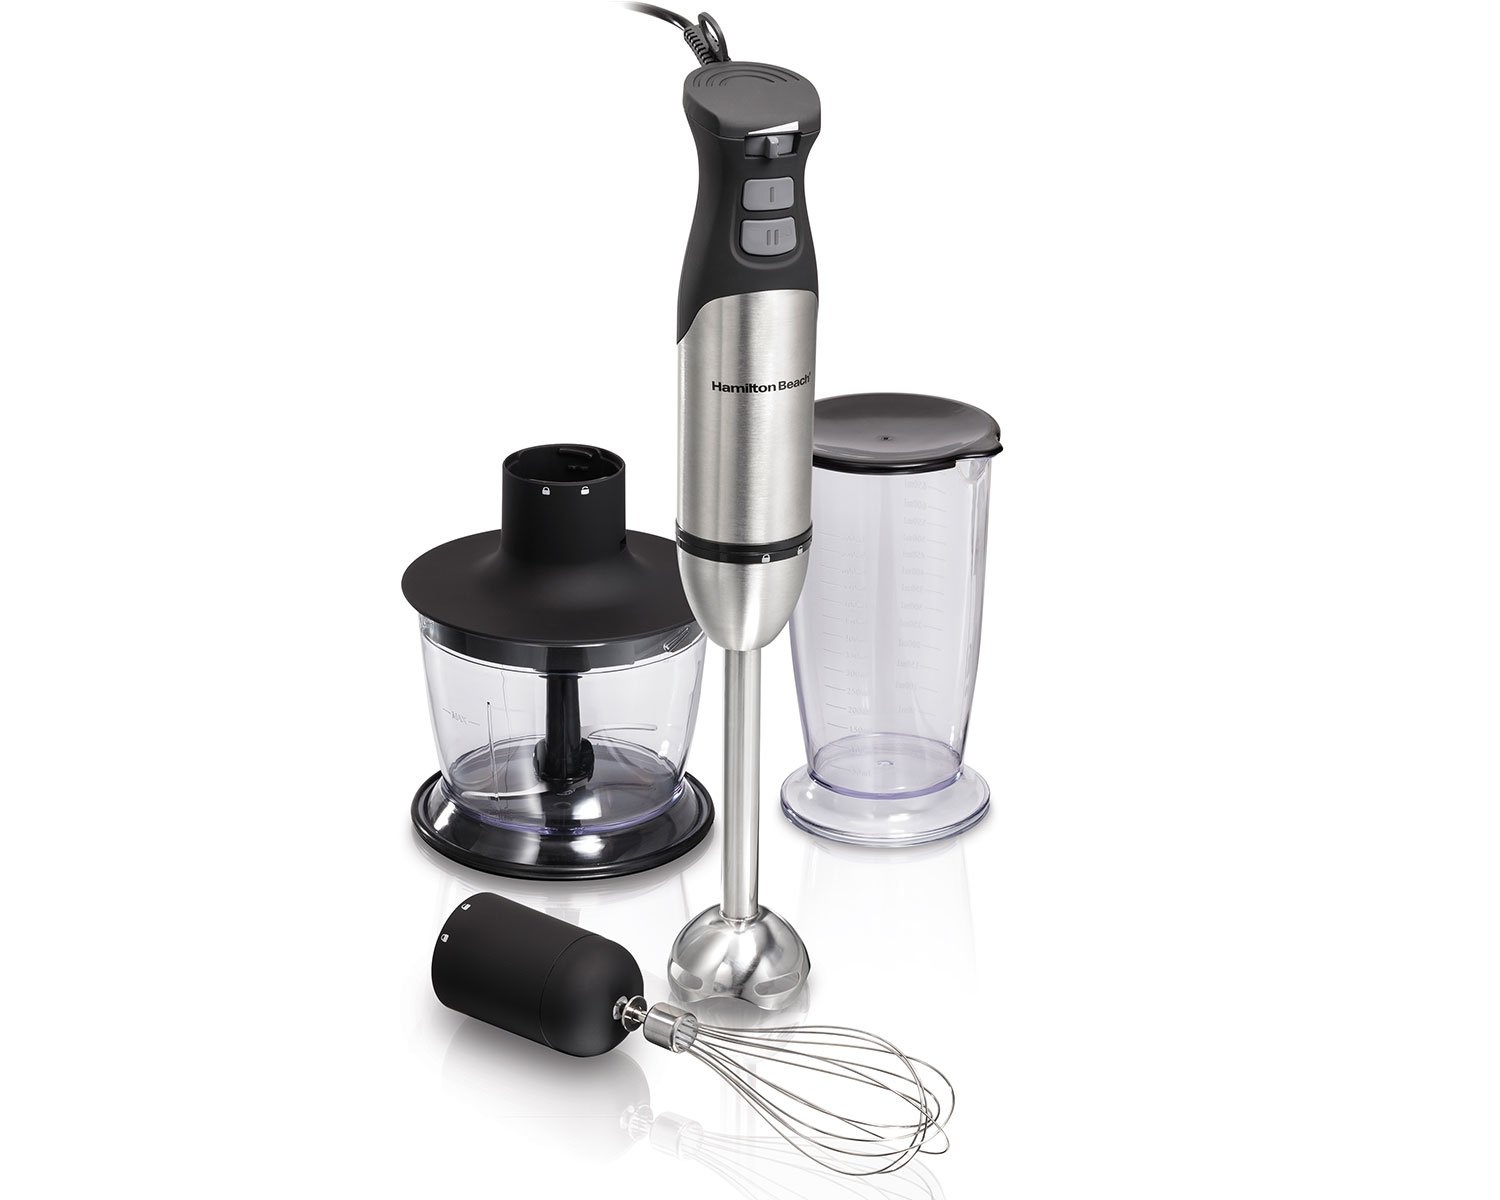 Hamilton-Beach 225 Watt Hand Blender (7 Piece Wand, Whisk, Mixing Cup, Chopper System) with 2 Speeds, Variable Speed & Turbo Boost Power (59766), Silver Hamilton Beach